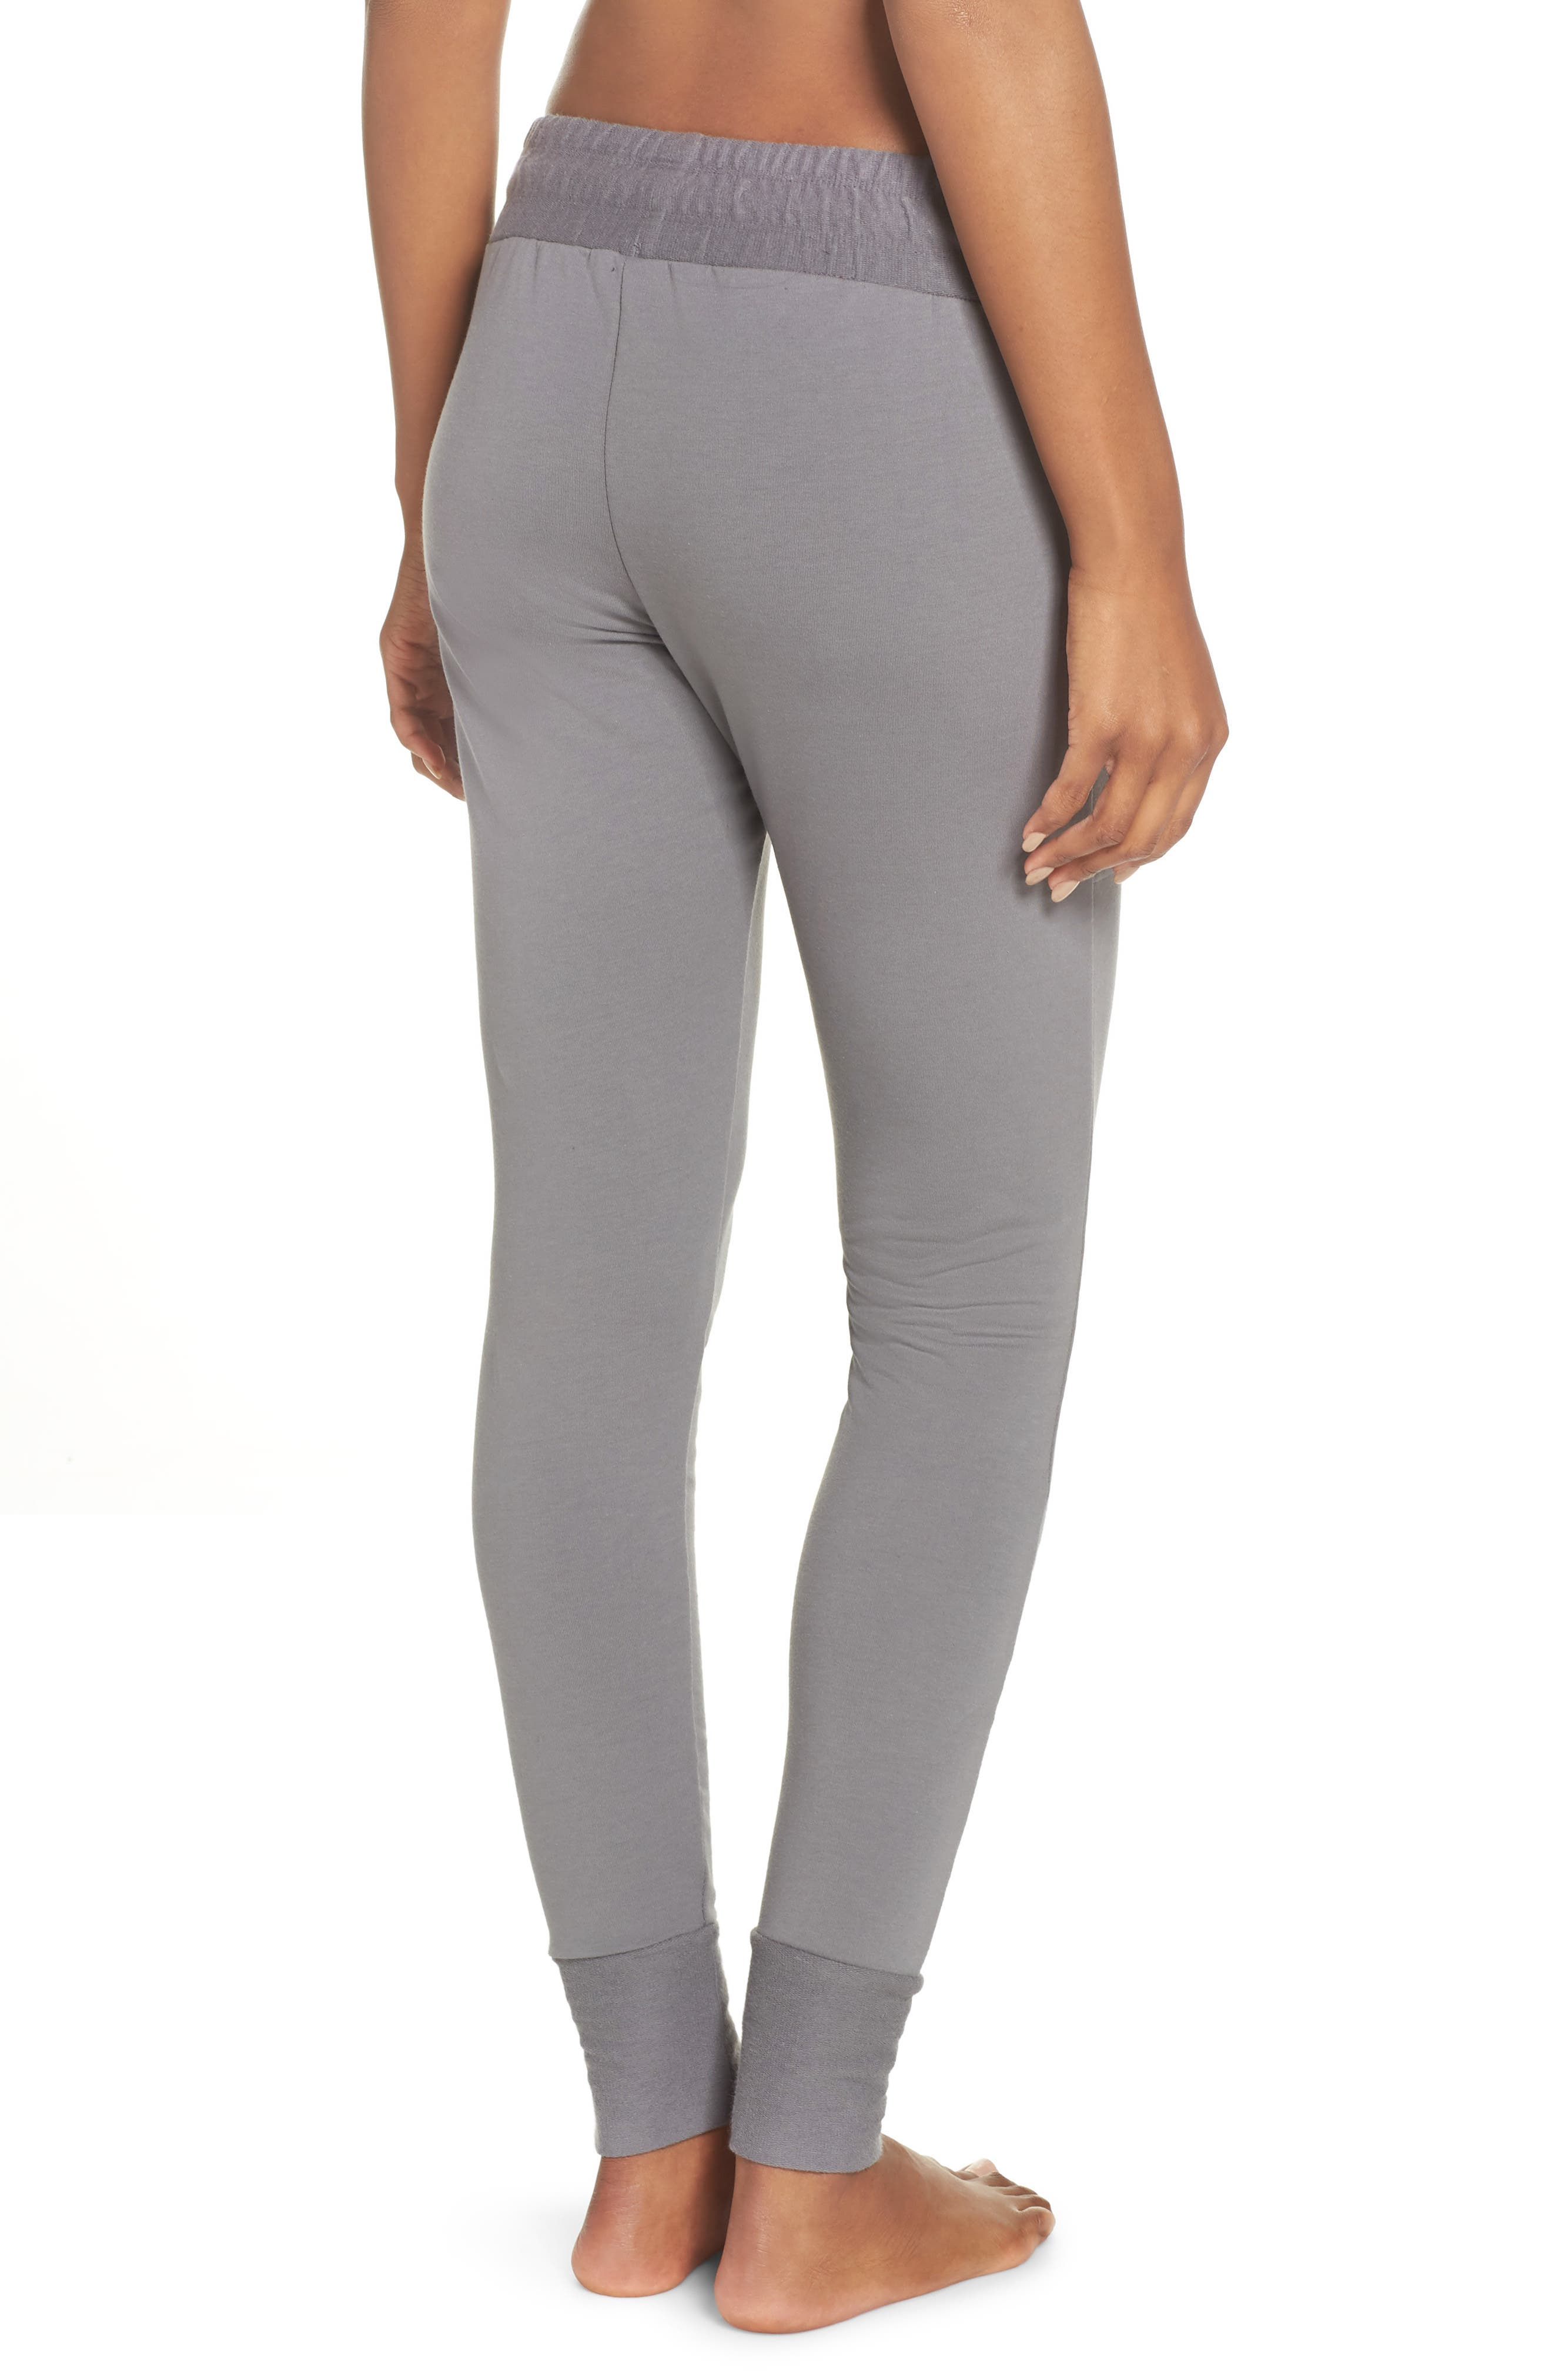 Sunny Skinny Sweatpants,                             Alternate thumbnail 2, color,                             DARK GREY